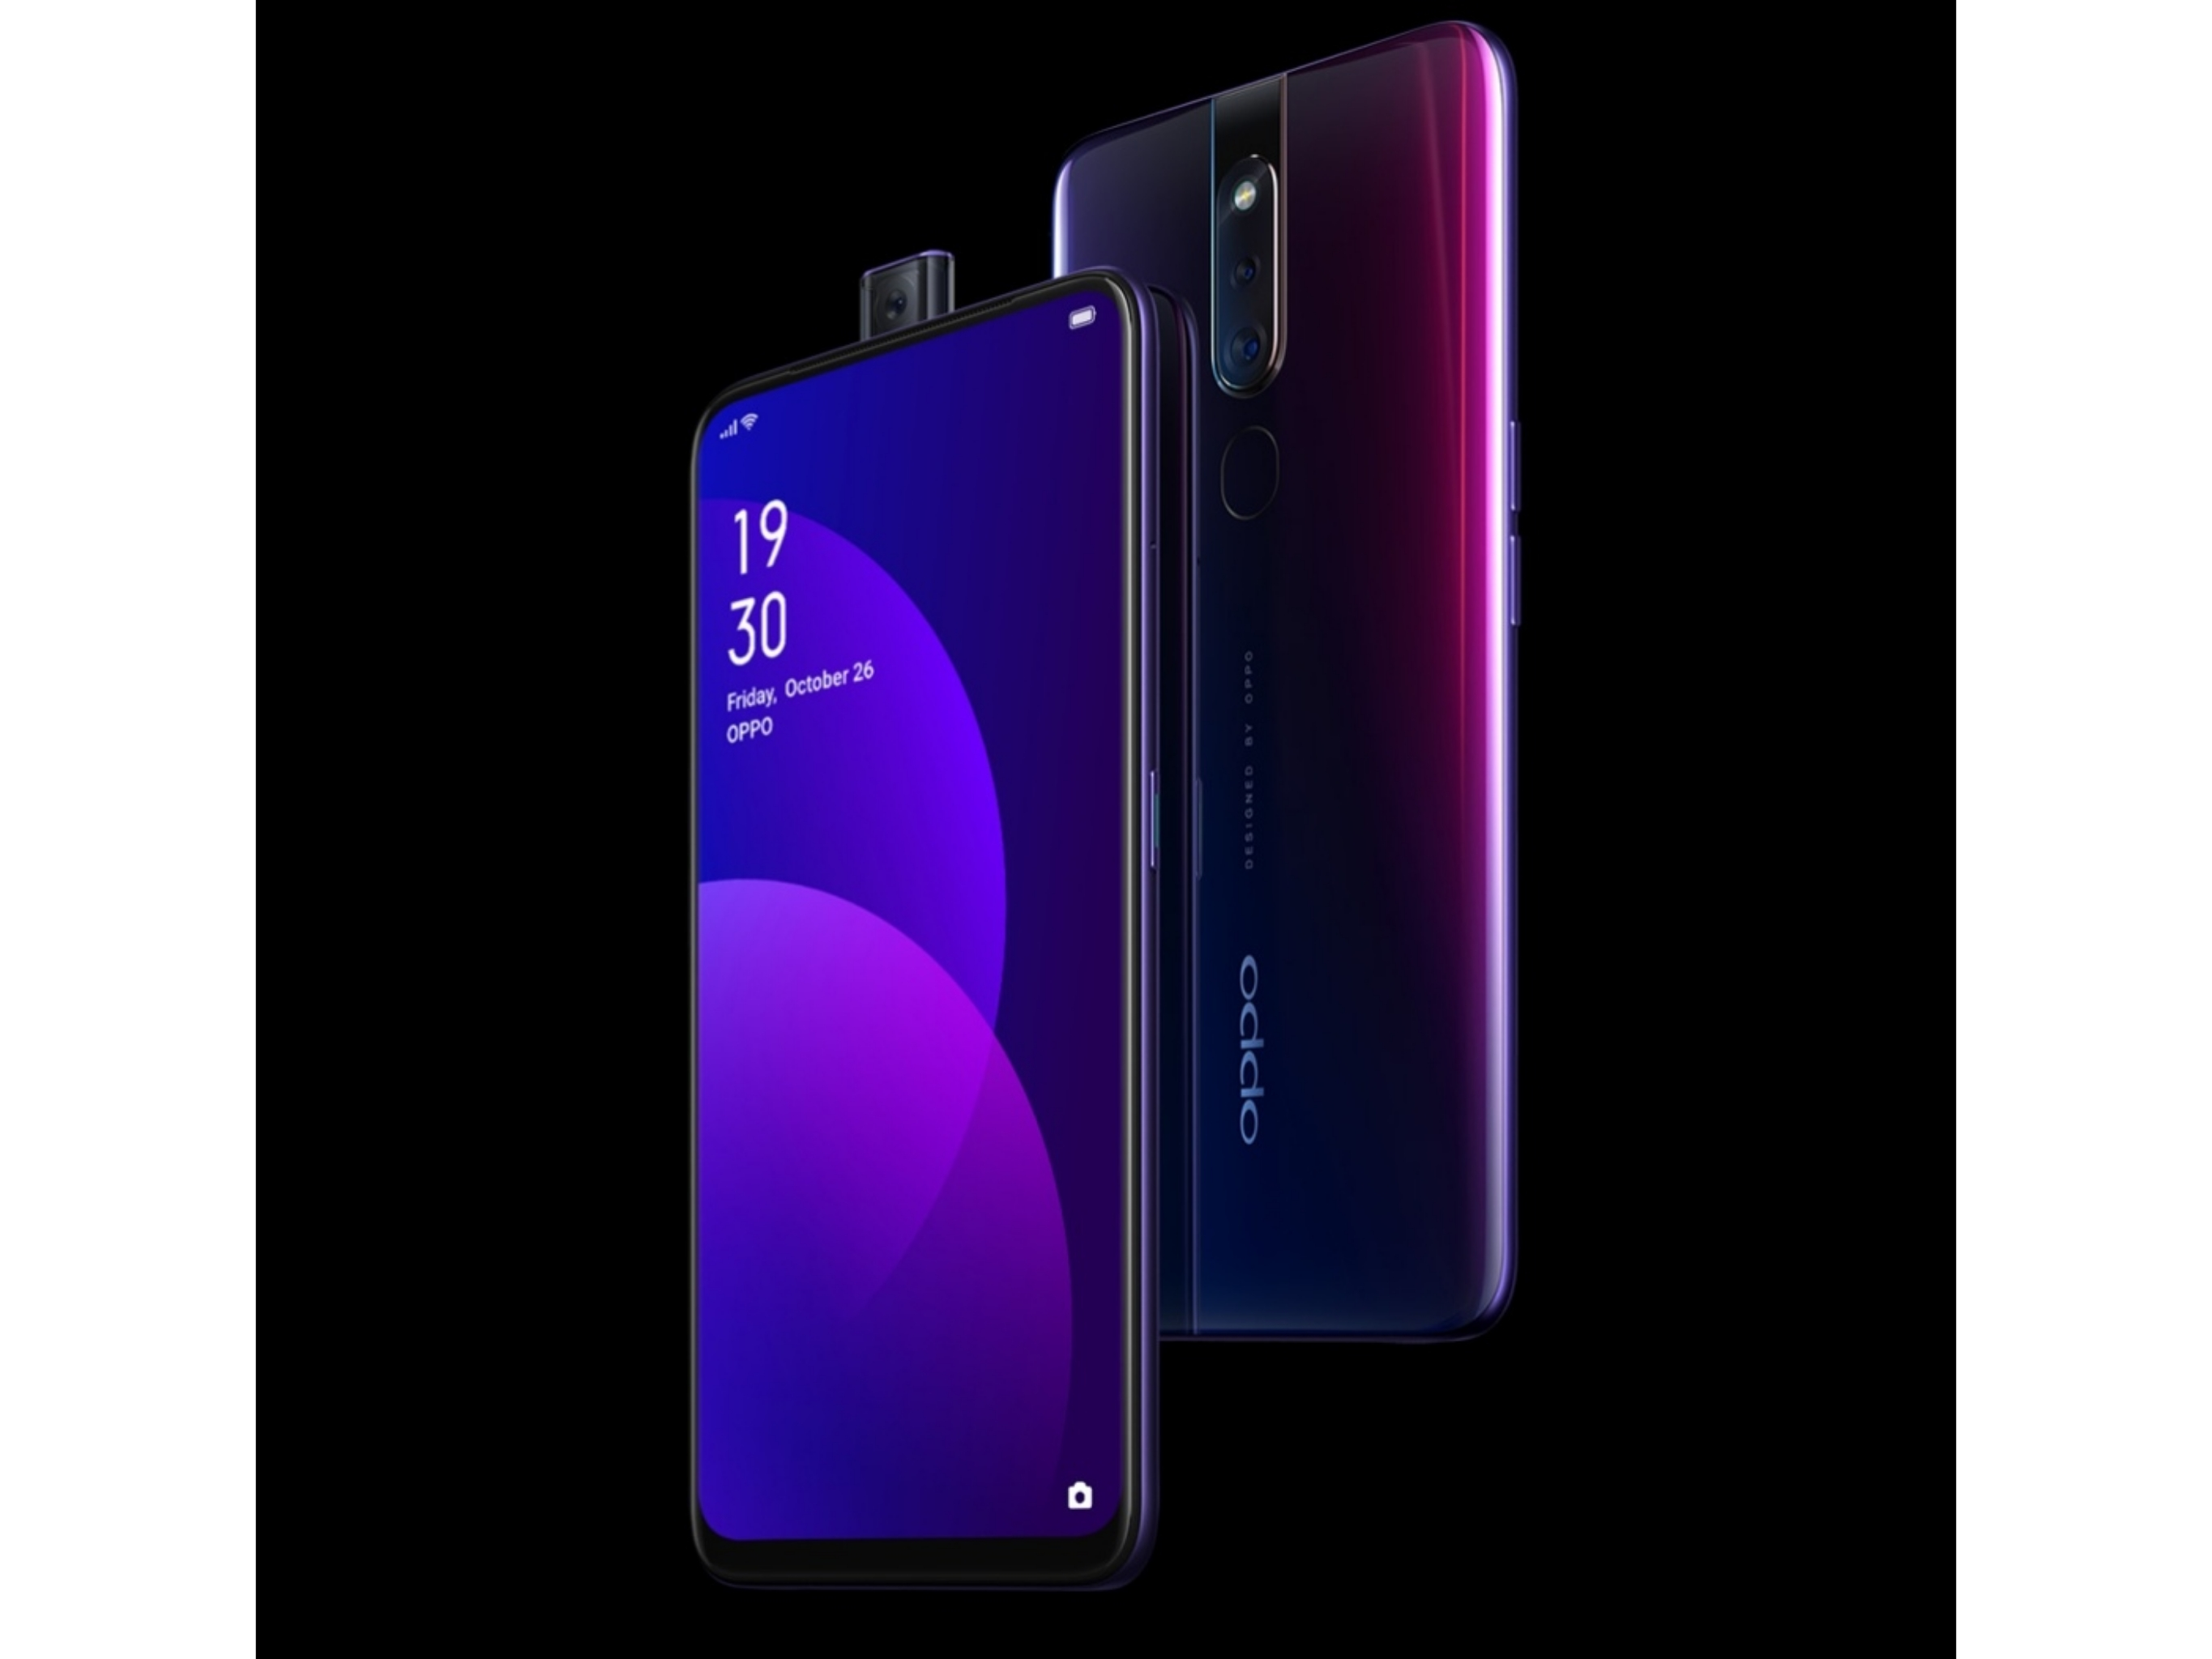 OPPO F11 and F11 PRO review